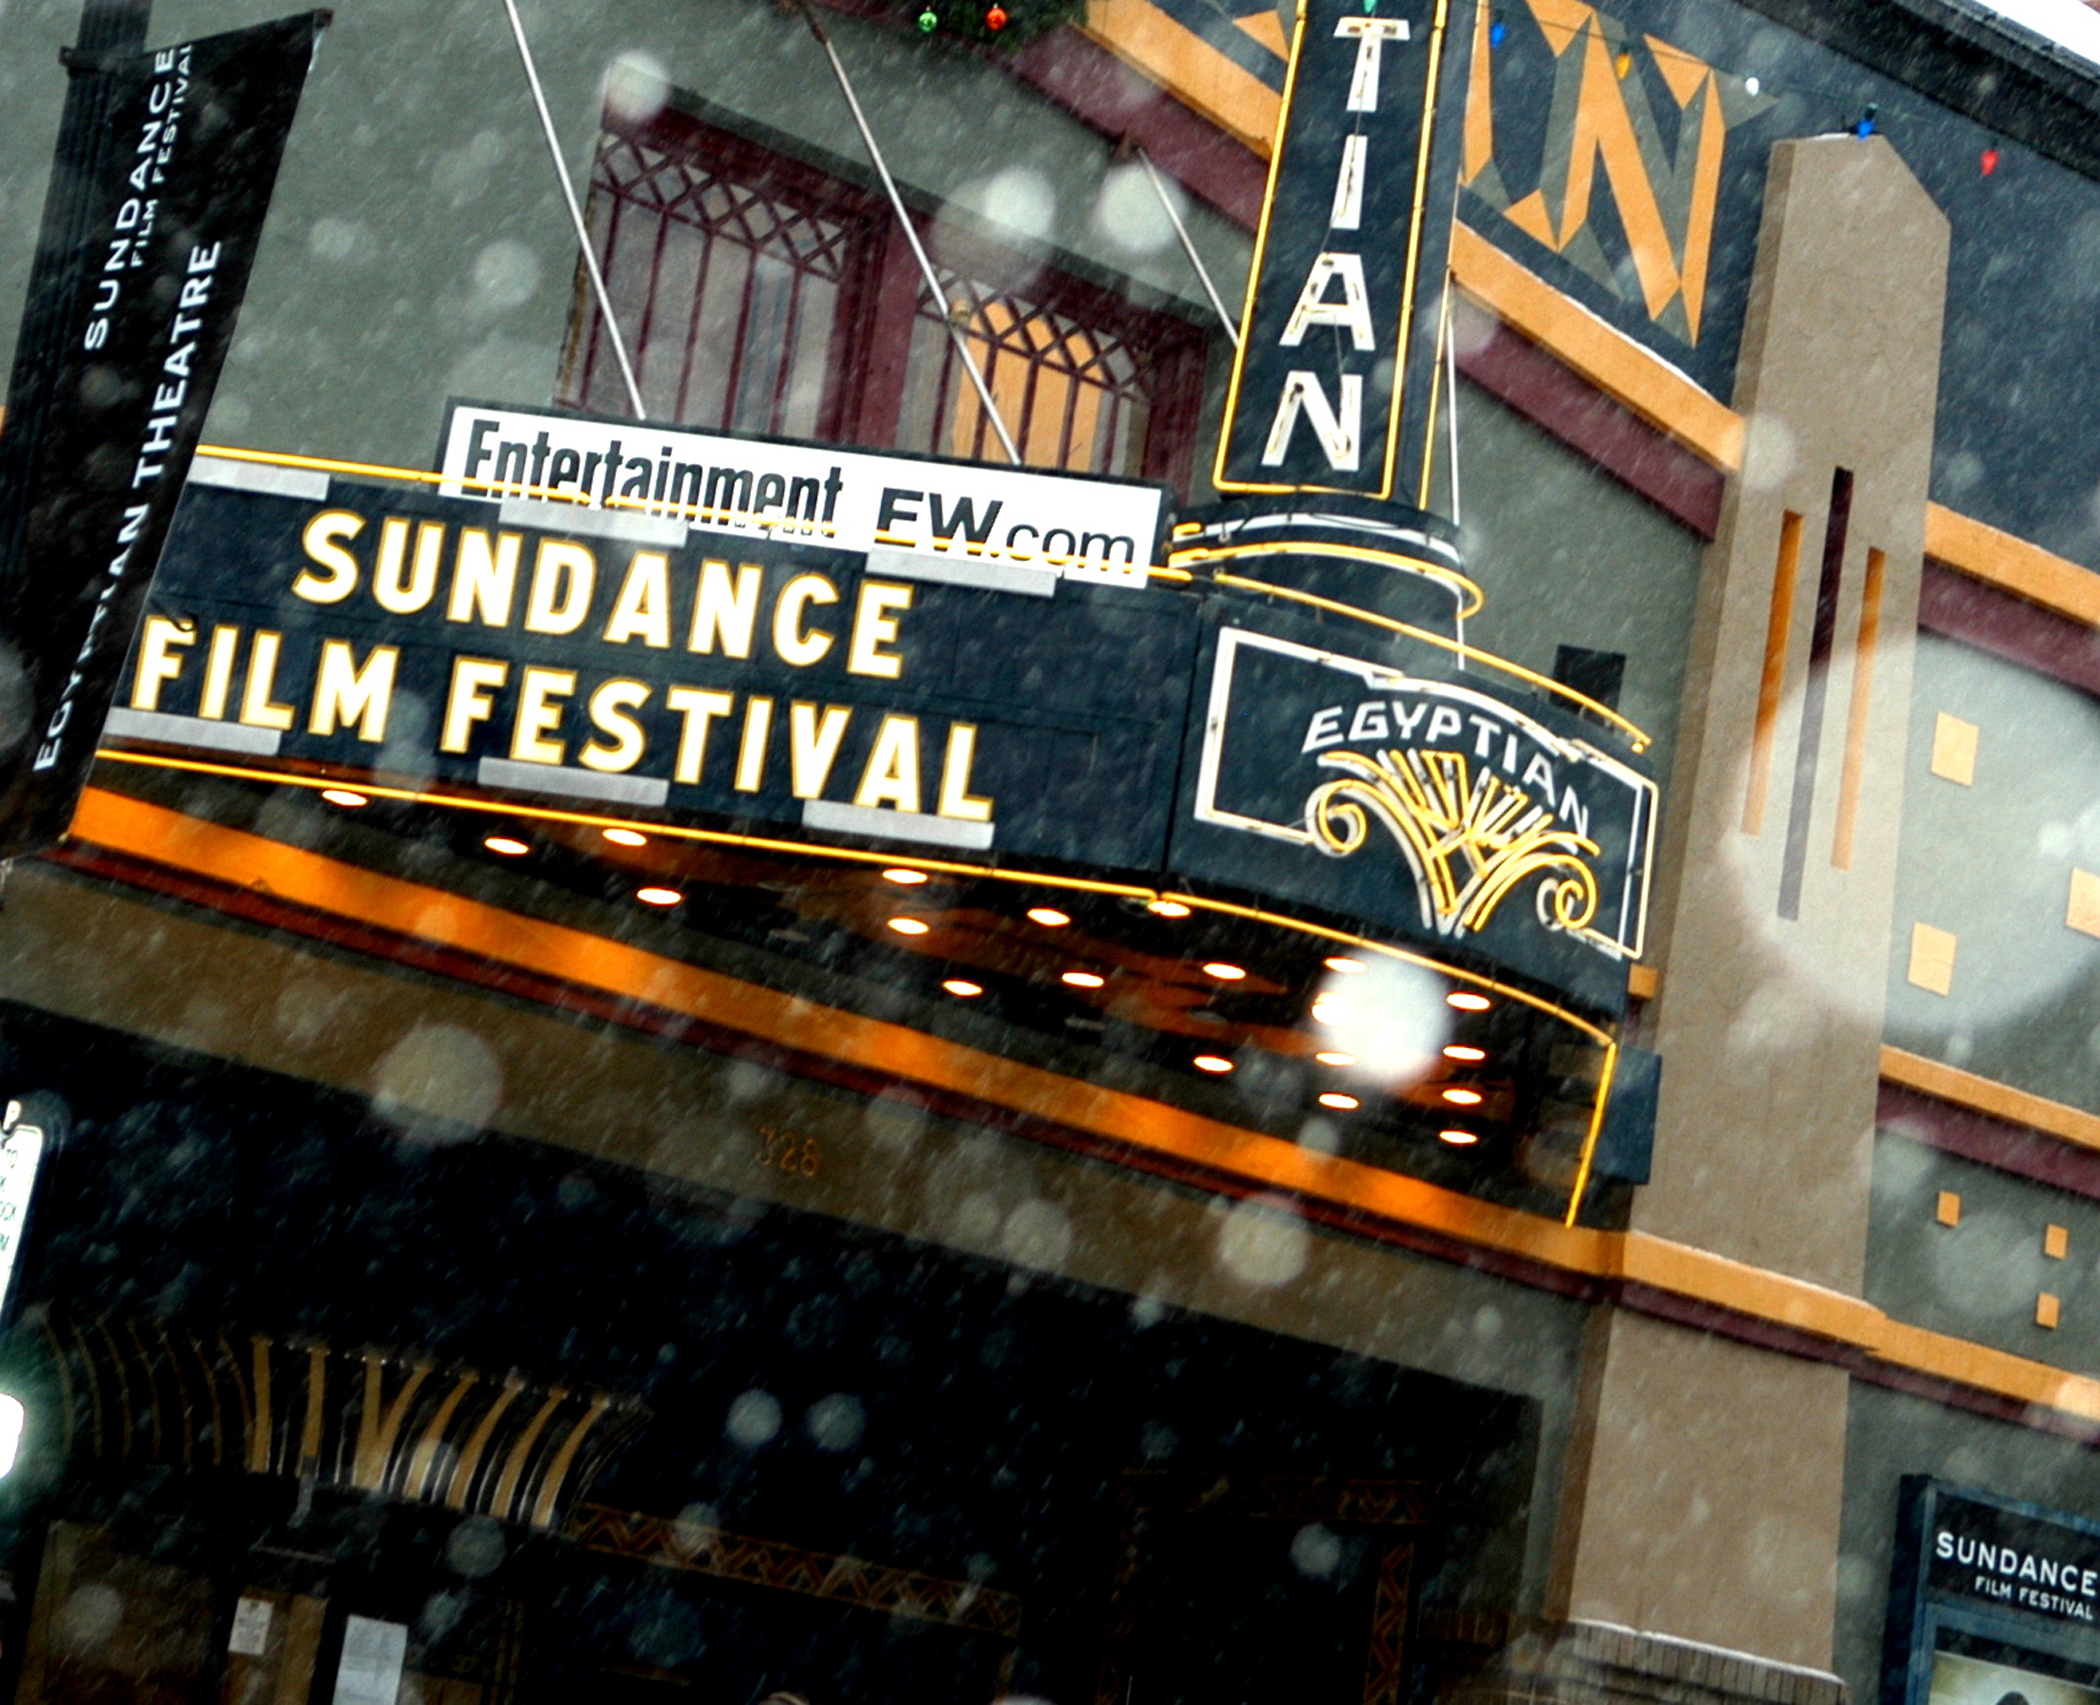 How to Attend the Sundance Film Festival and See Every Film for Free